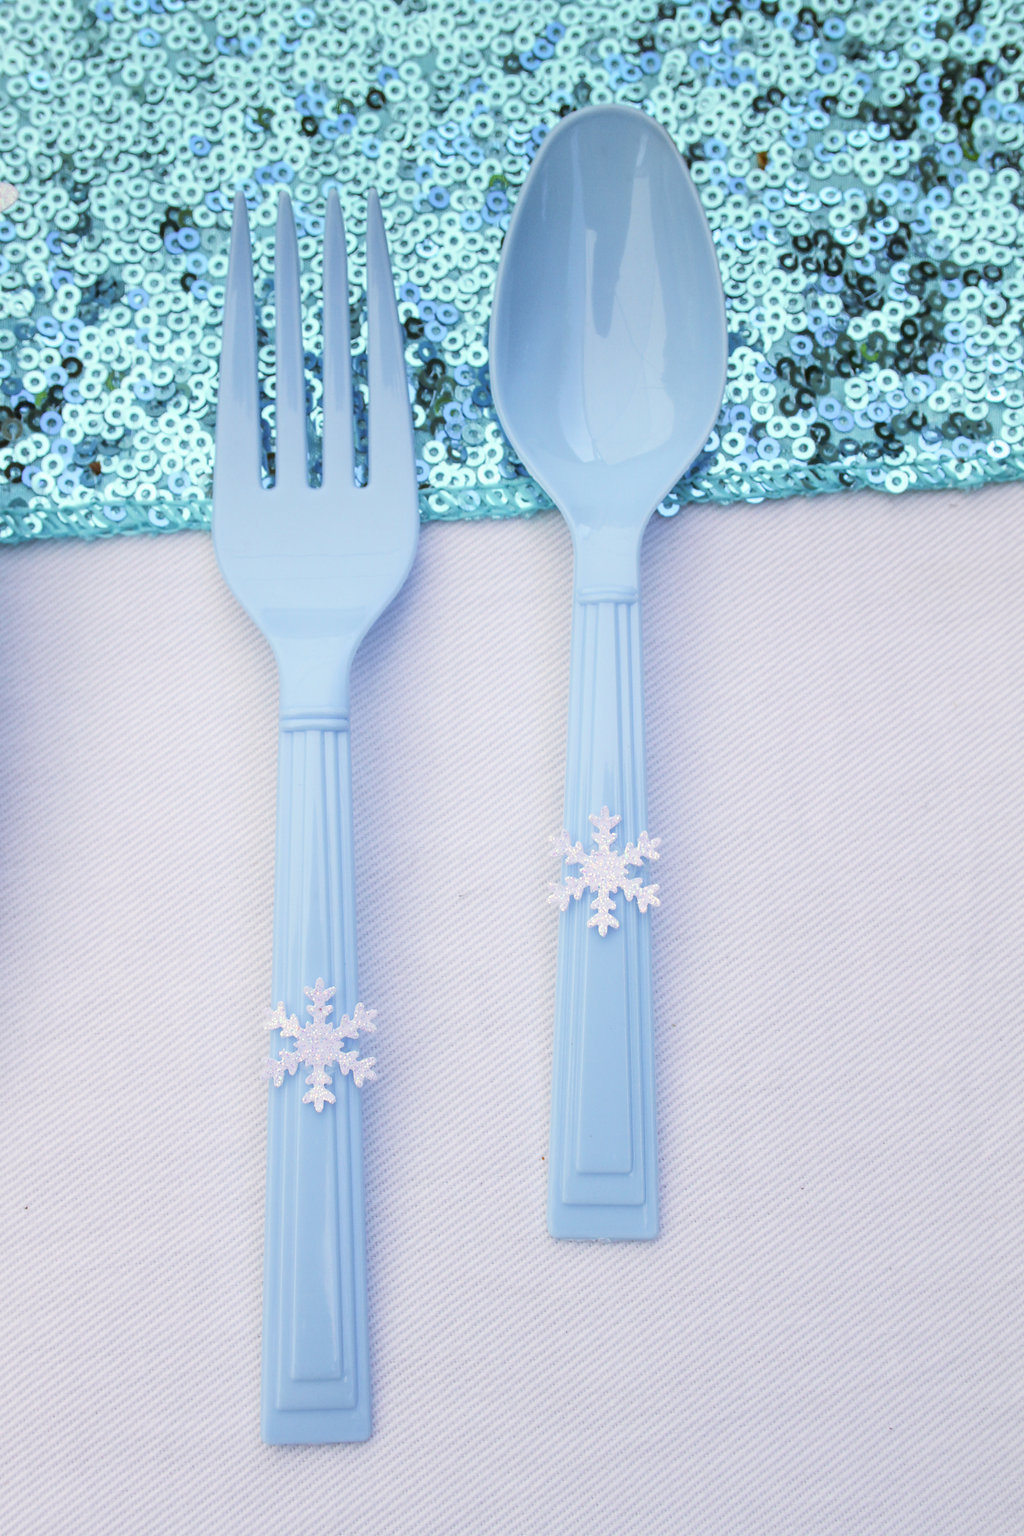 sweetly chic events & design frozen party frozen themed utensils